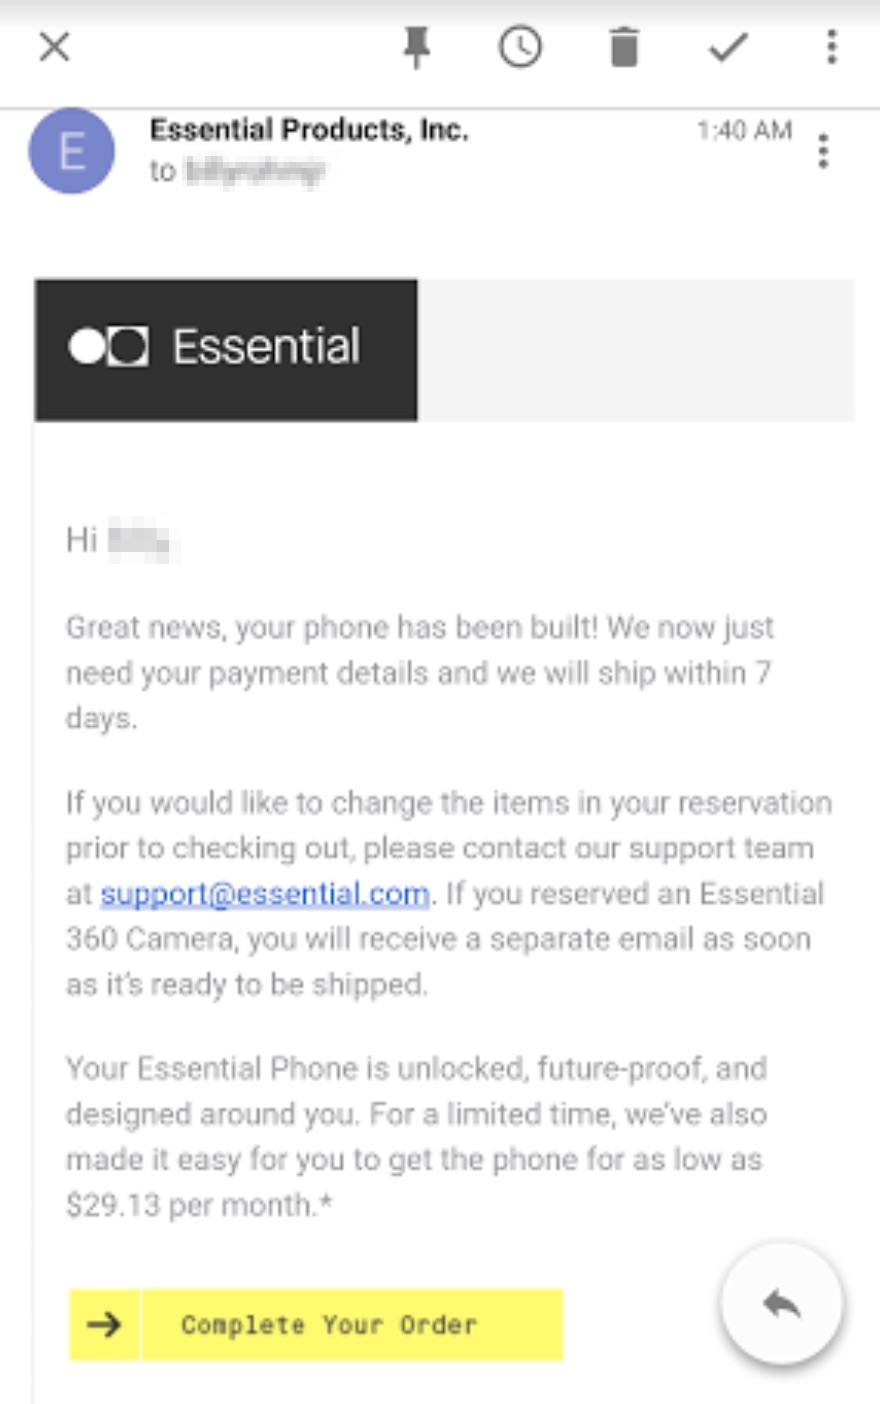 352email Readycontact Usco Ltd Mail: Essential Phone Is Ready For Purchase, But Only In Black